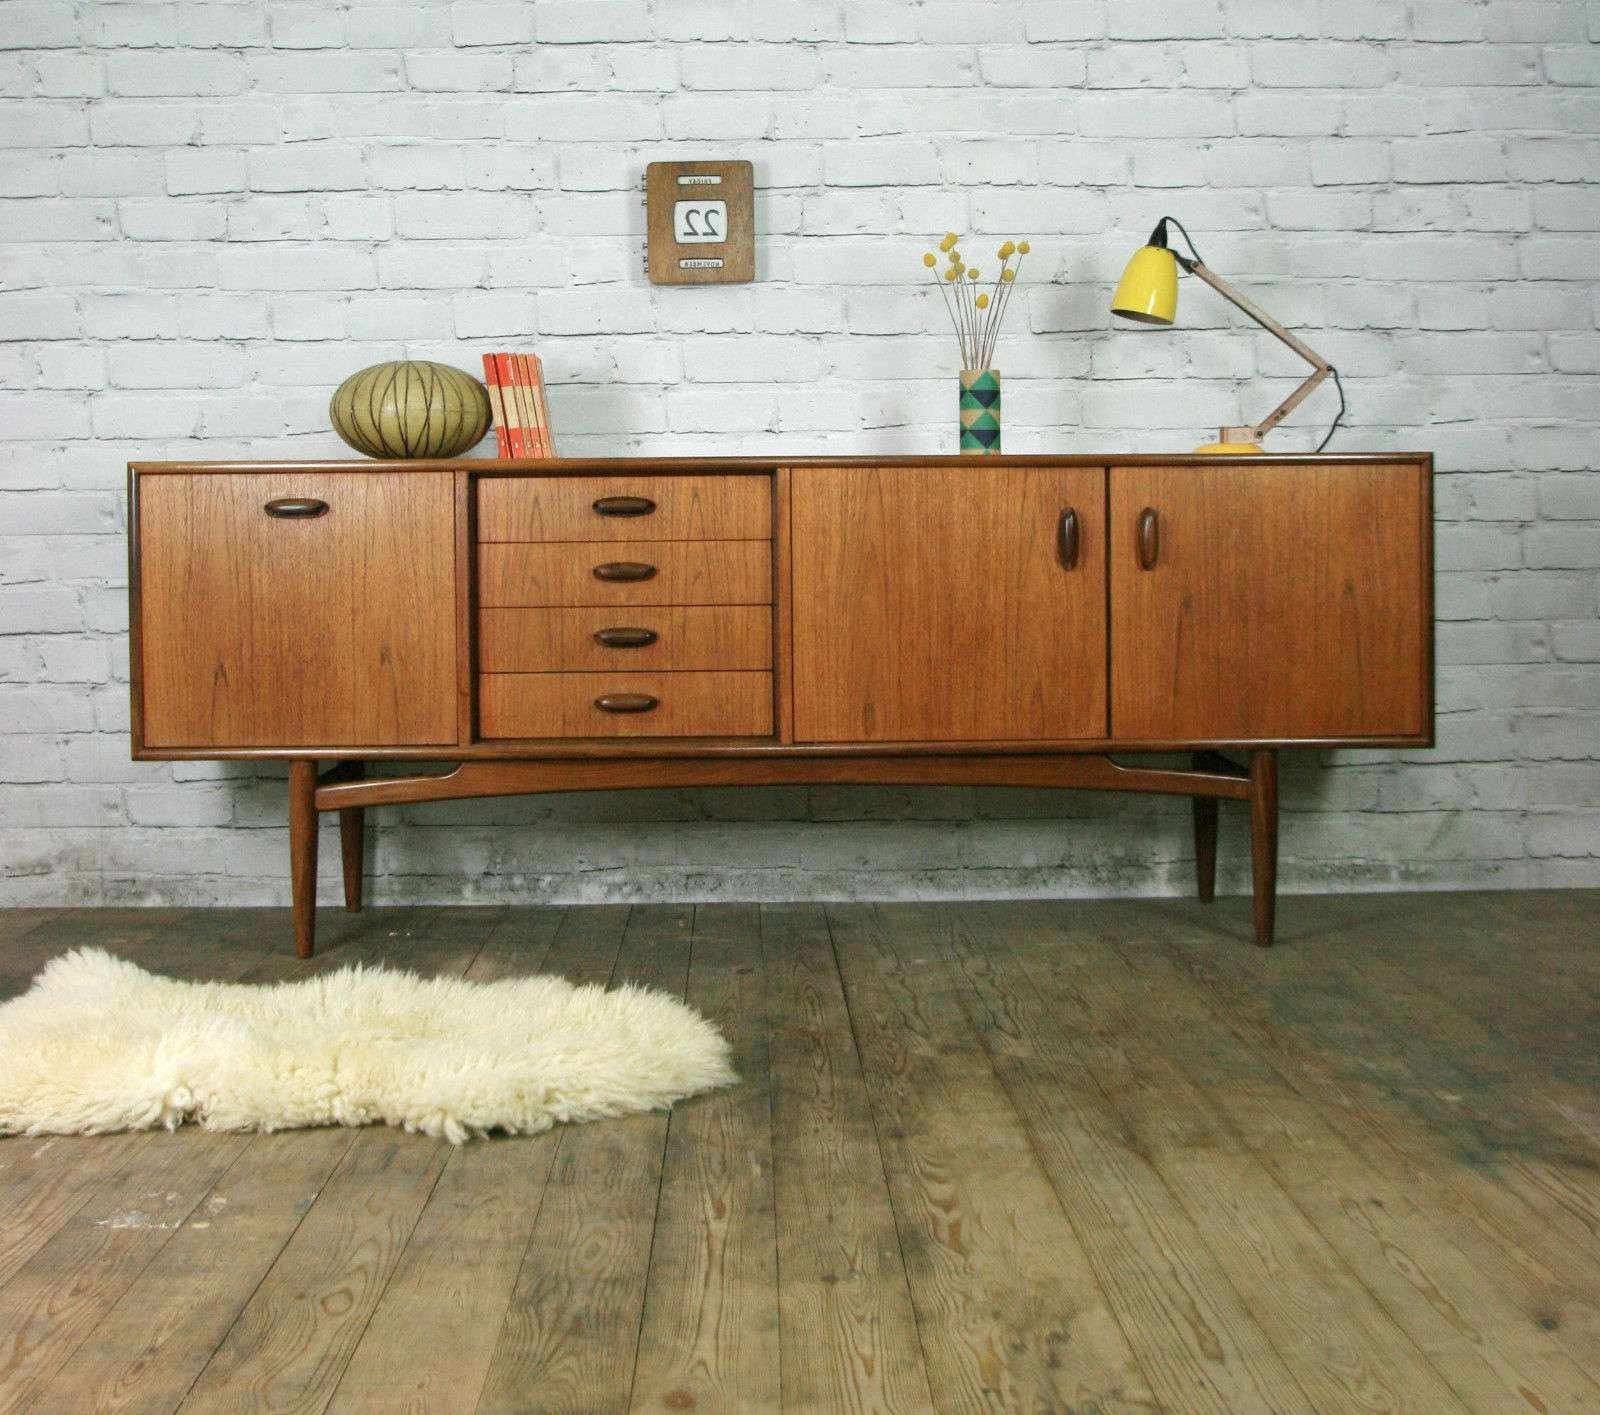 Retro Scandinavian Chair, Vintage Sideboards And Buffets Ideas With Retro Sideboards (View 13 of 20)